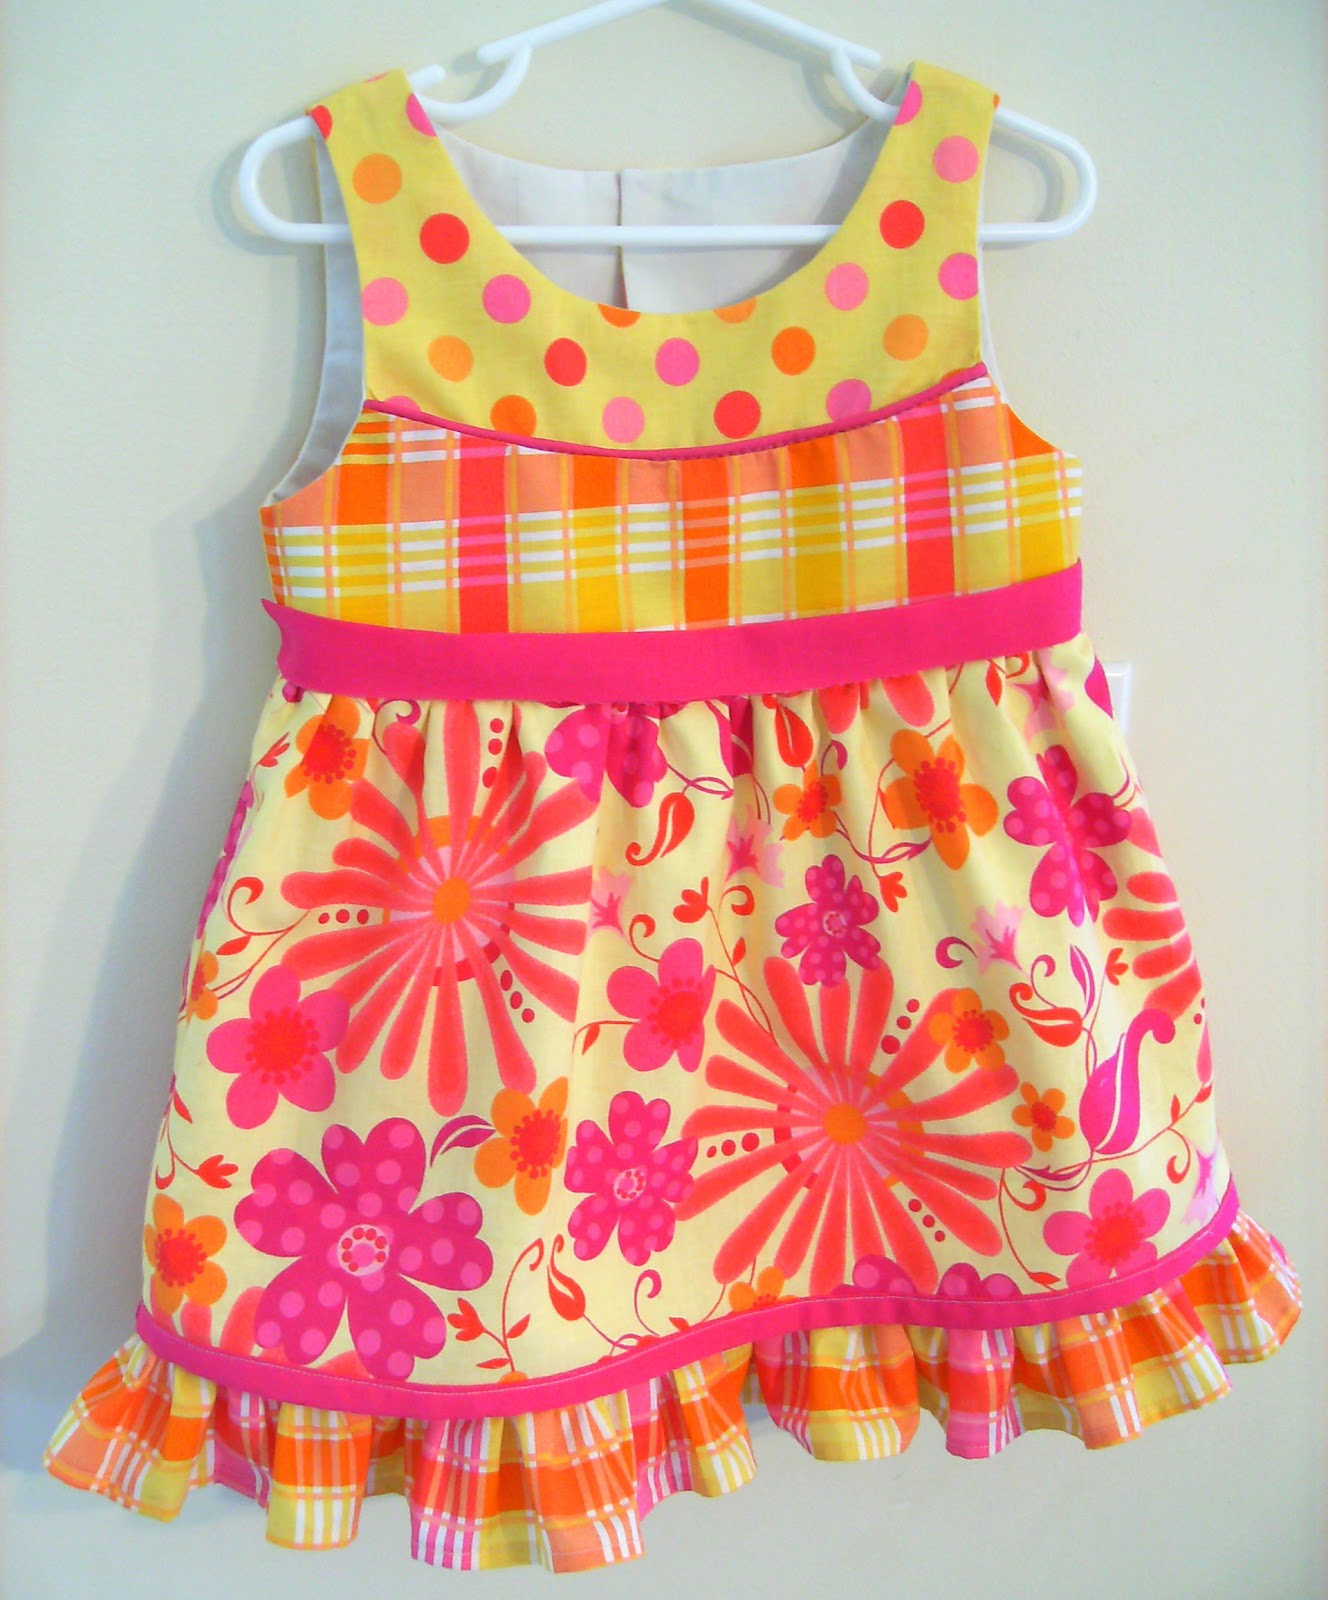 New Dress Designs | Bumbleberries Boutique